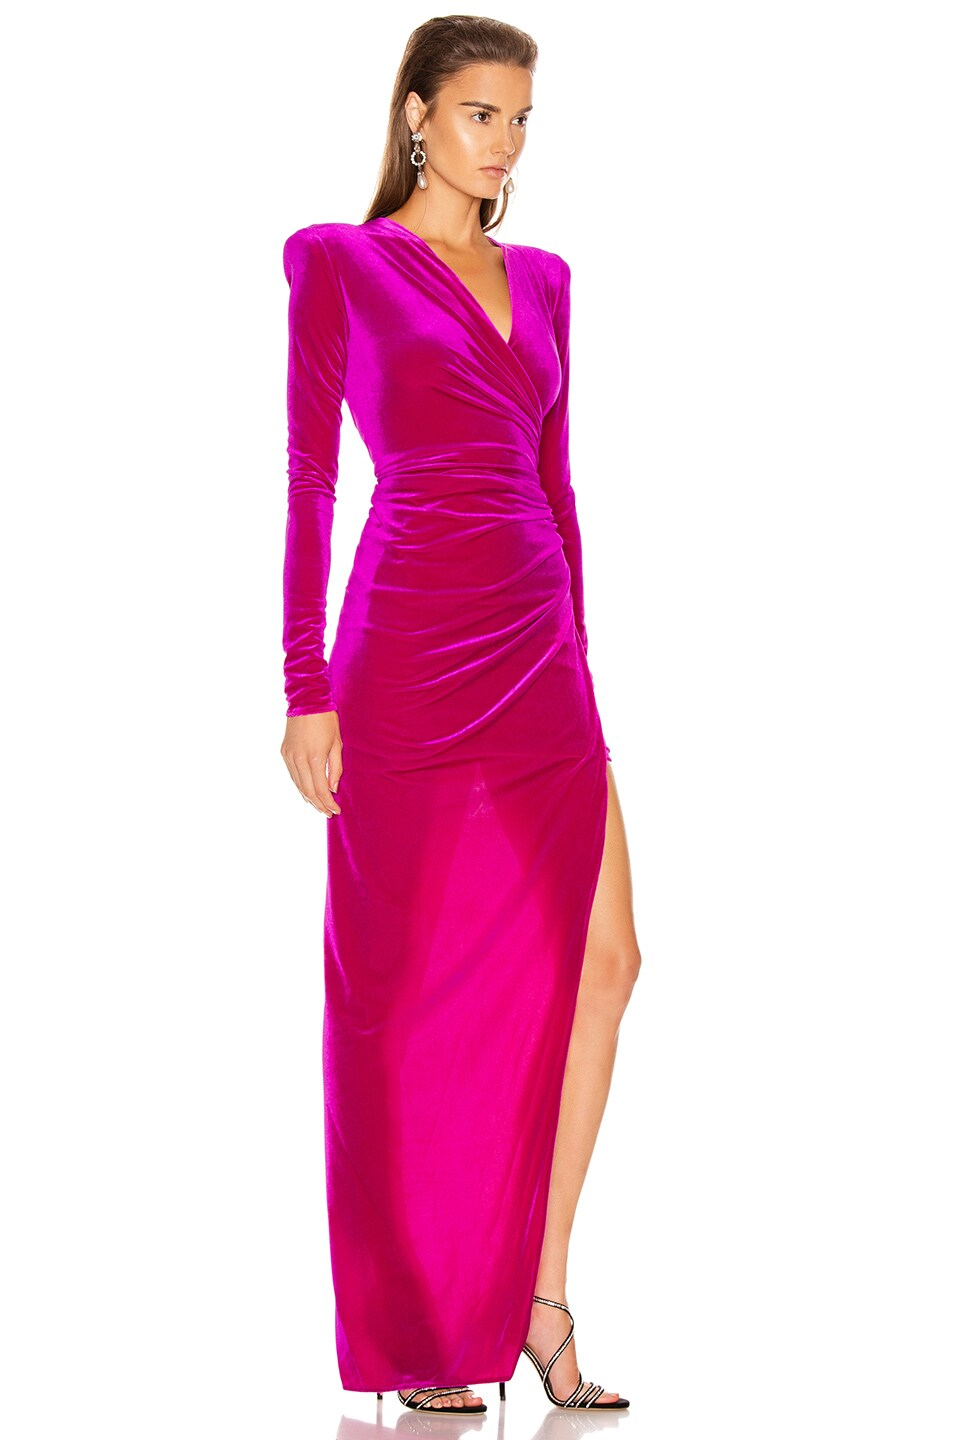 Image 2 of Alexandre Vauthier for FWRD Ruched Velvet Gown in Fuchsia